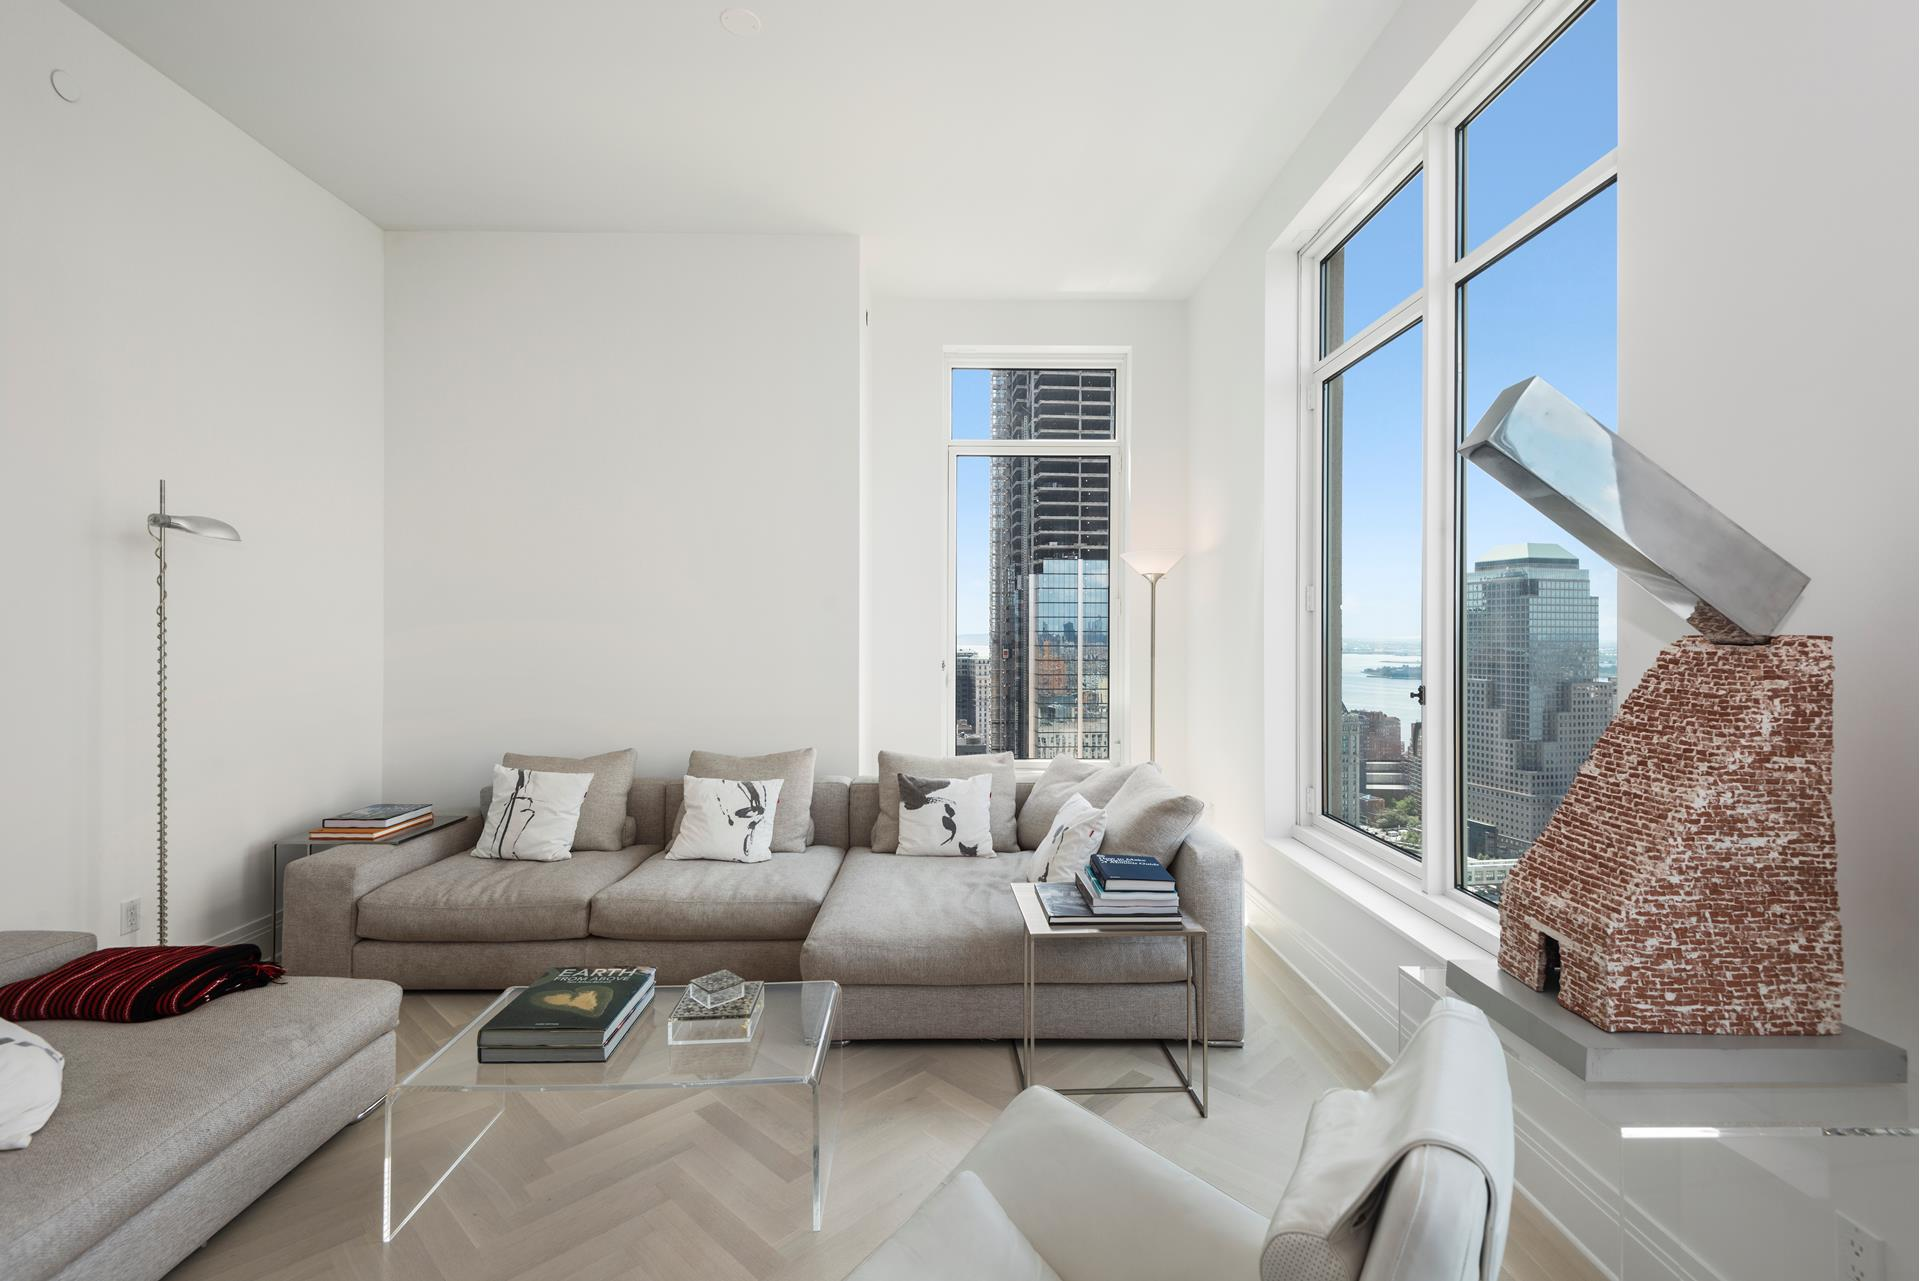 NOW AVAILABLE SHORT TERM 6 MONTHS AS WELL AS LONG TERM. LIVE IN THIS GRAND HIGH FLOOR CORNER THREE BEDROOM HOME AT THE LUXURIOUS FOUR SEASONS PRIVATE RESIDENCES IN DOWNTOWN MANHATTAN. SWEEPING WORLD TRADE CENTER VIEWS SOUTH AND HUDSON WATER VIEWS WESTS TO WATCH SUNSETS AT COMFORT OF YOUR OWN HOME. THE FOUR SEASONS OFFER TOP OF THE LINE FIVE STAR SERVICES AND WORLD REKNOWNED AMENITIES INCLUDING 75 FT. LAP POOL AND FOUR SEASON'S SPA. IT IS ALSO CURRENTLY THE TALLEST RESIDENTIAL BUILDING TO GRACE THE DOWNTOWN SKYLINE AT 926 FT. HIGH..Welcome to this stunning, south and west facing three bedroom home. Formal foyer leads to the corner open living and dining room with fantastic light and unobstructed sunset views. Beautifully appointed master bedroom suite faces west with luxurious master bath featuring two vanities, glass enclosed shower, and freestanding soaking tub. Second bedroom is equally grand with corner views south and west. Chefs galley kitchen is perfect for cooking in privacy and entertaining.  Interior finishes include solid oak wood flooring with herringbone pattern in the formal rooms, Bilotta rift-cut oak kitchen cabinetry, Gaggenau appliances, marble bathrooms with Robert A.M. Stern custom-designed vanities. This home is equipped with Lutron electric shades (blackout and solar shades in bedrooms and solar shades in living/dining room, and added light fixtures throughout. Life at the Four Seasons Residences will offer residents ability to use hotel a-la-carte services including in-room dining, maid, and concierge services (aside from condo bellman and concierge) for additional fee. Developed by visionary Silverstein Properties, Inc. Masterfully designed by Robert A.M. Stern Architects. Enjoy 5-star living with access to the Four Seasons Hotel amenities including spa with sauna and steam rooms, professional salon, swimming pool, attended parking garage, Wolfgang Puck's CUT restaurant, bar and lounge, ballroom facilities, and meeting rooms, as well as a comp